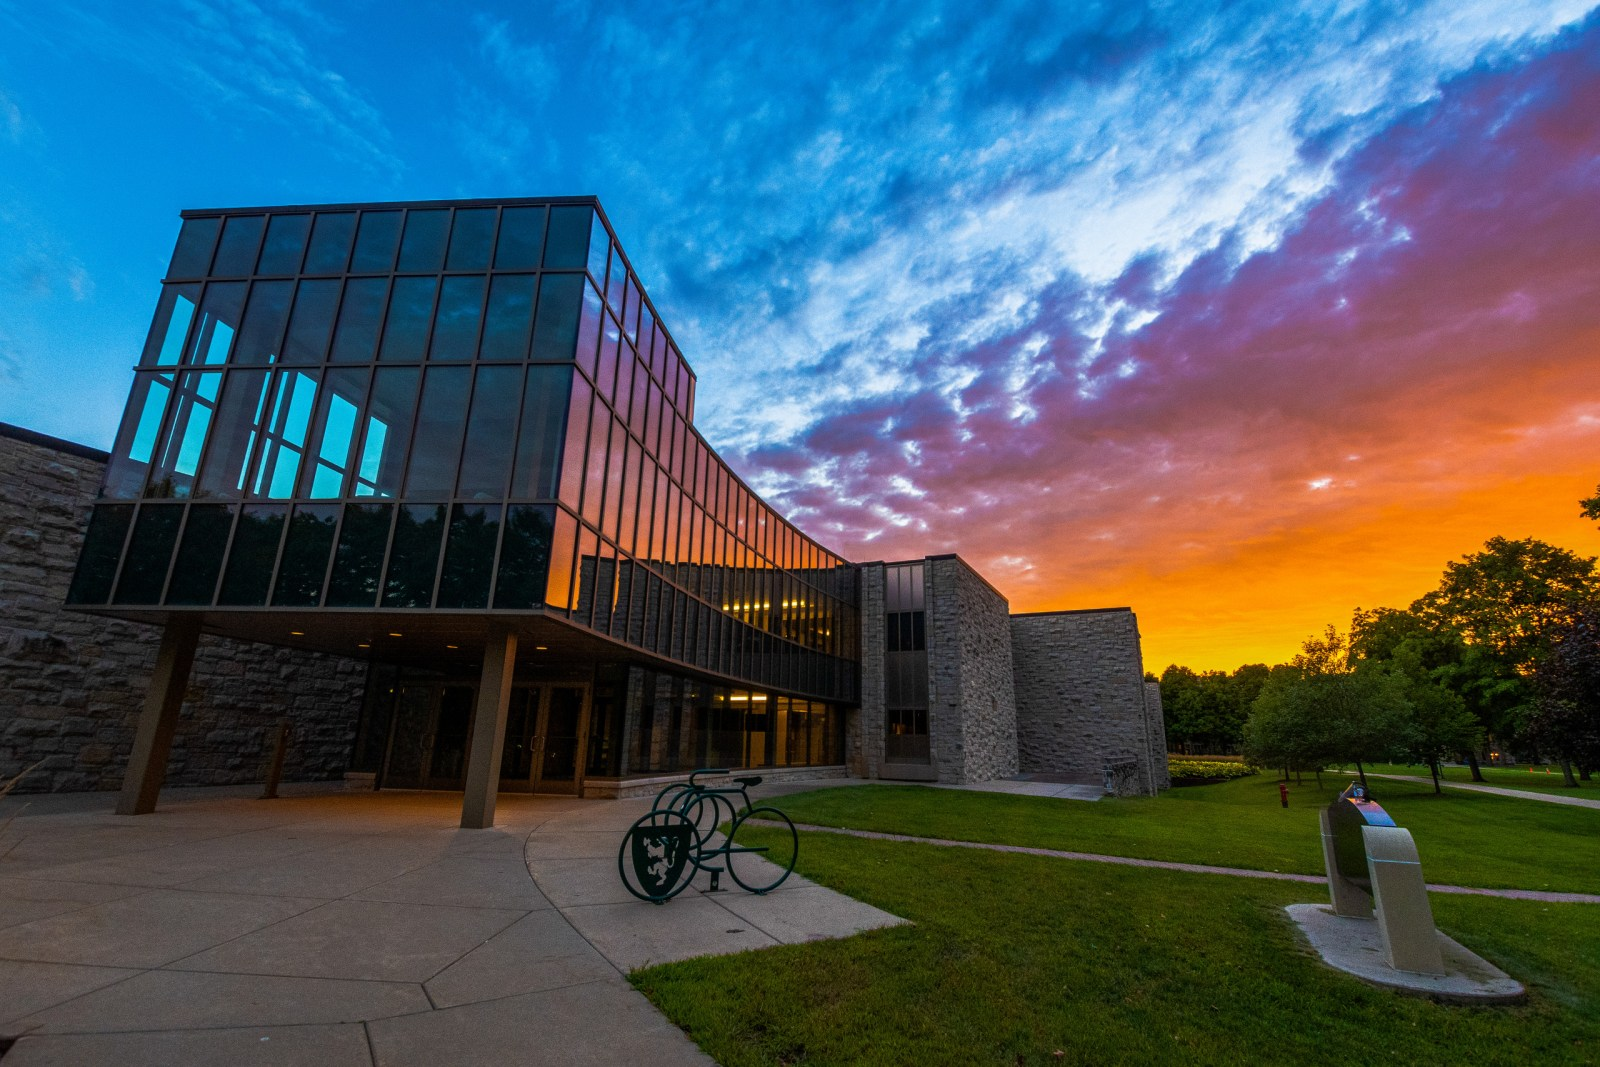 Campus_Sunsets-58-2